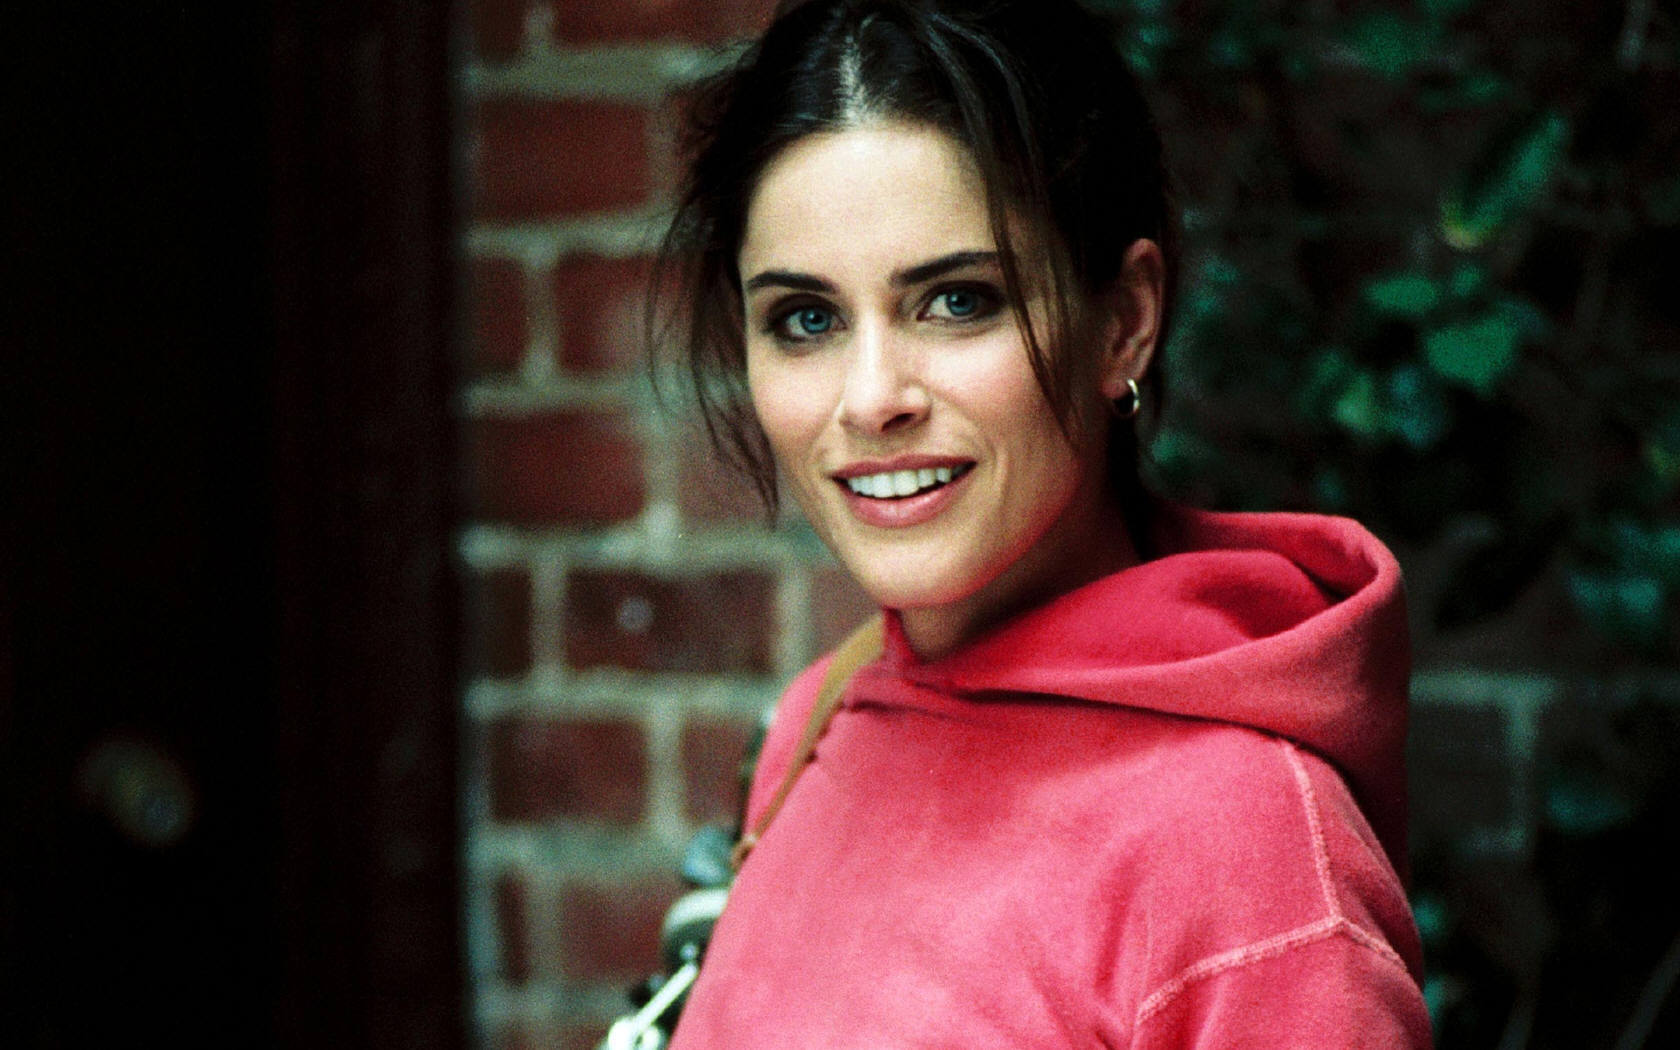 Amanda peet in the whole nine yards 2 - 4 7